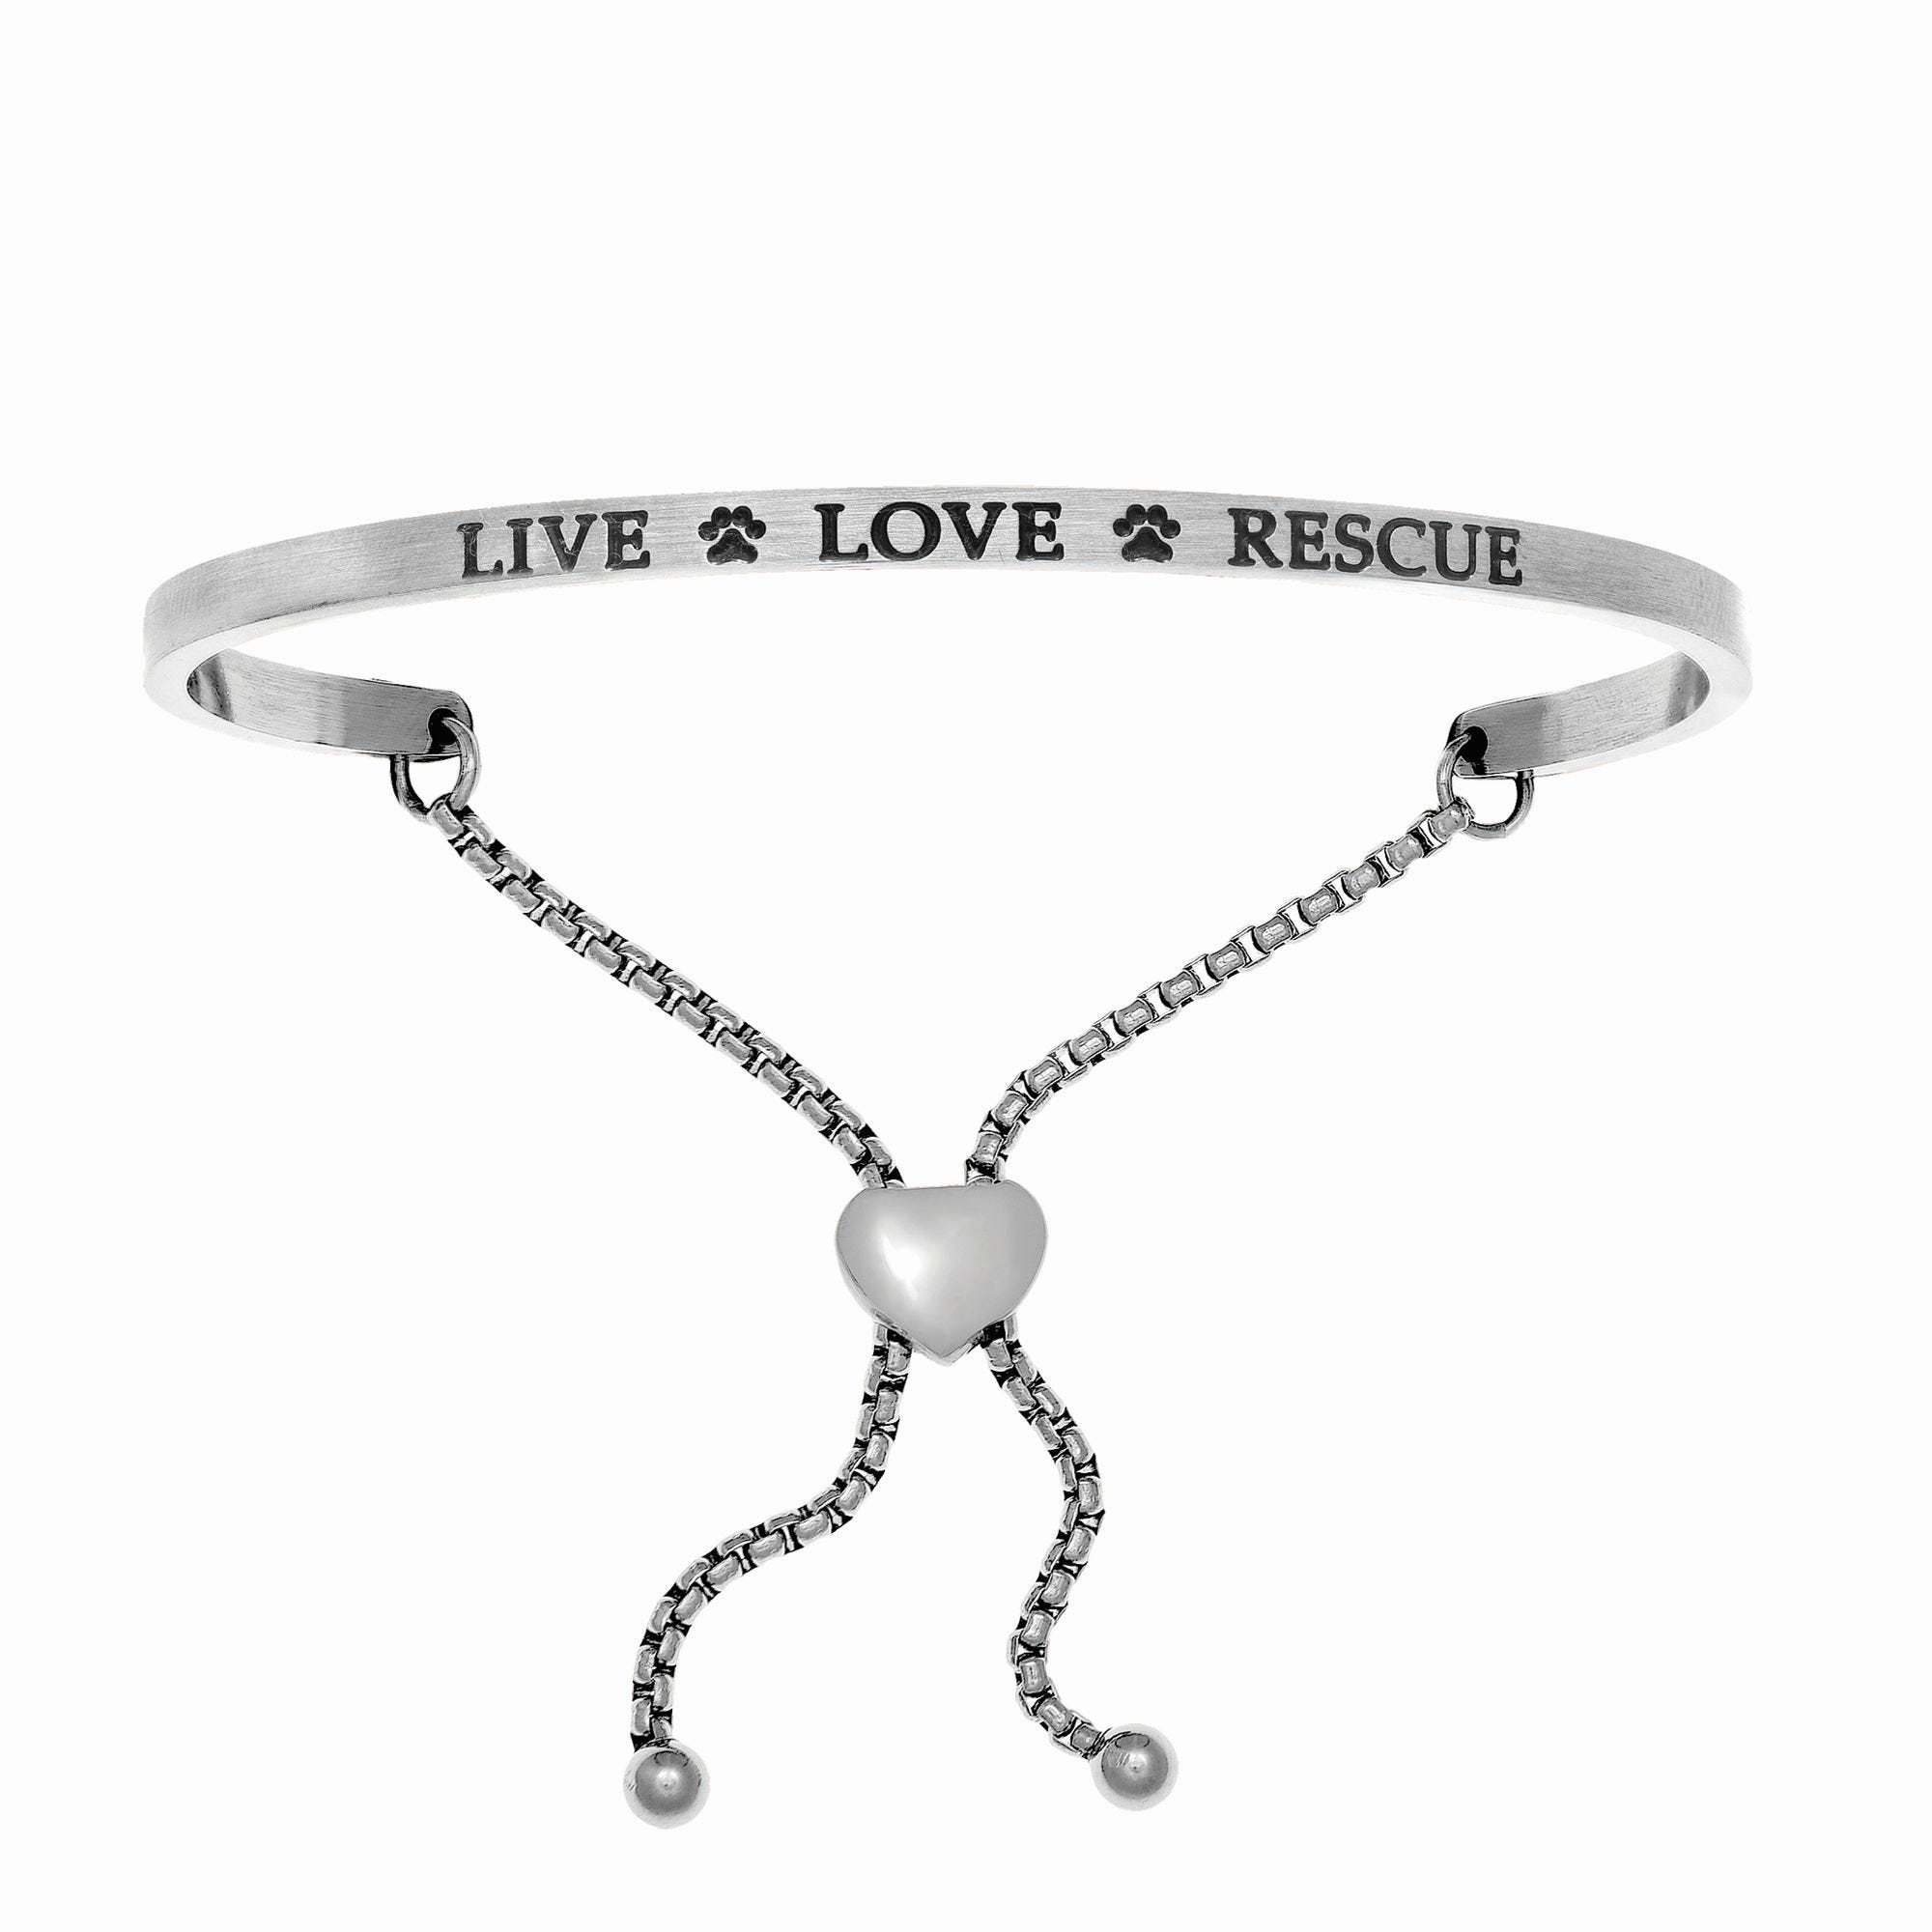 Live Love Rescue. Intuitions Bolo Bracelet in White Stainless Steel